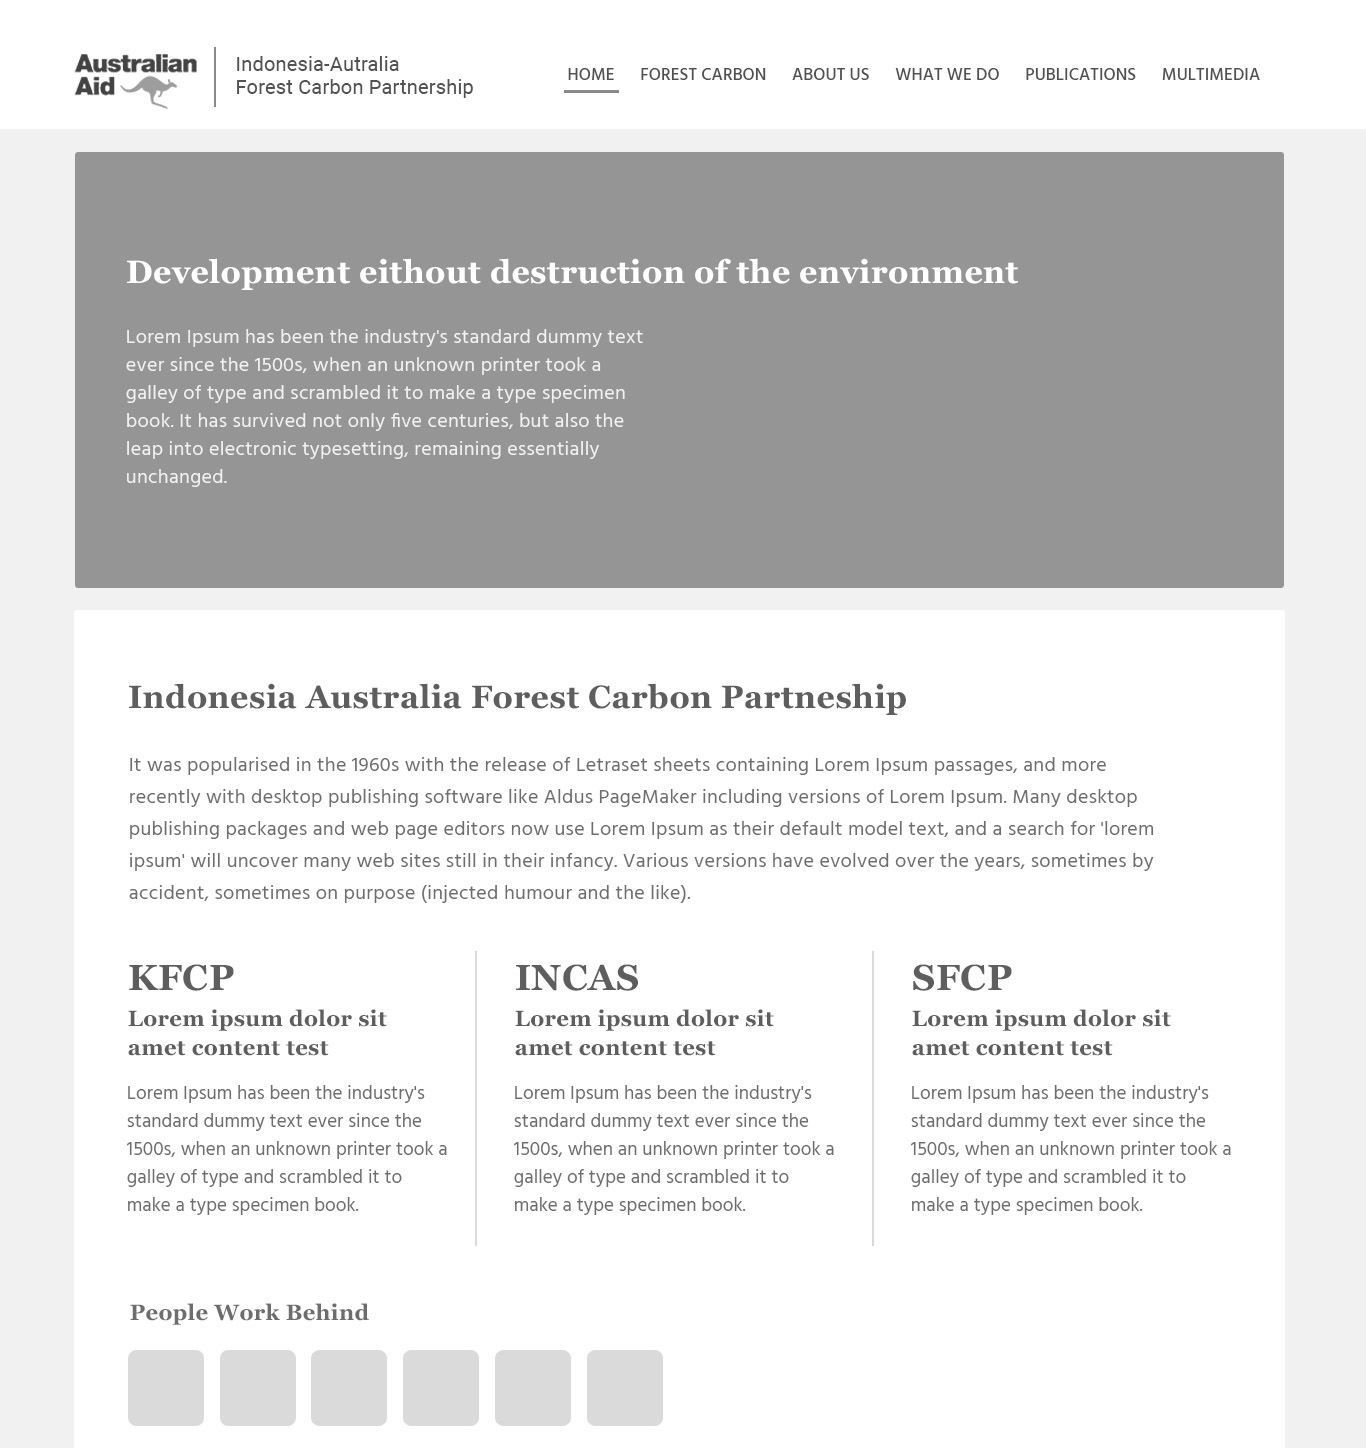 Komunigrafik, ui-ux web design and development Indonesia - Project Showcase and Portfolio for IAFC - Indonesia Australia Forest Carbon Partneship